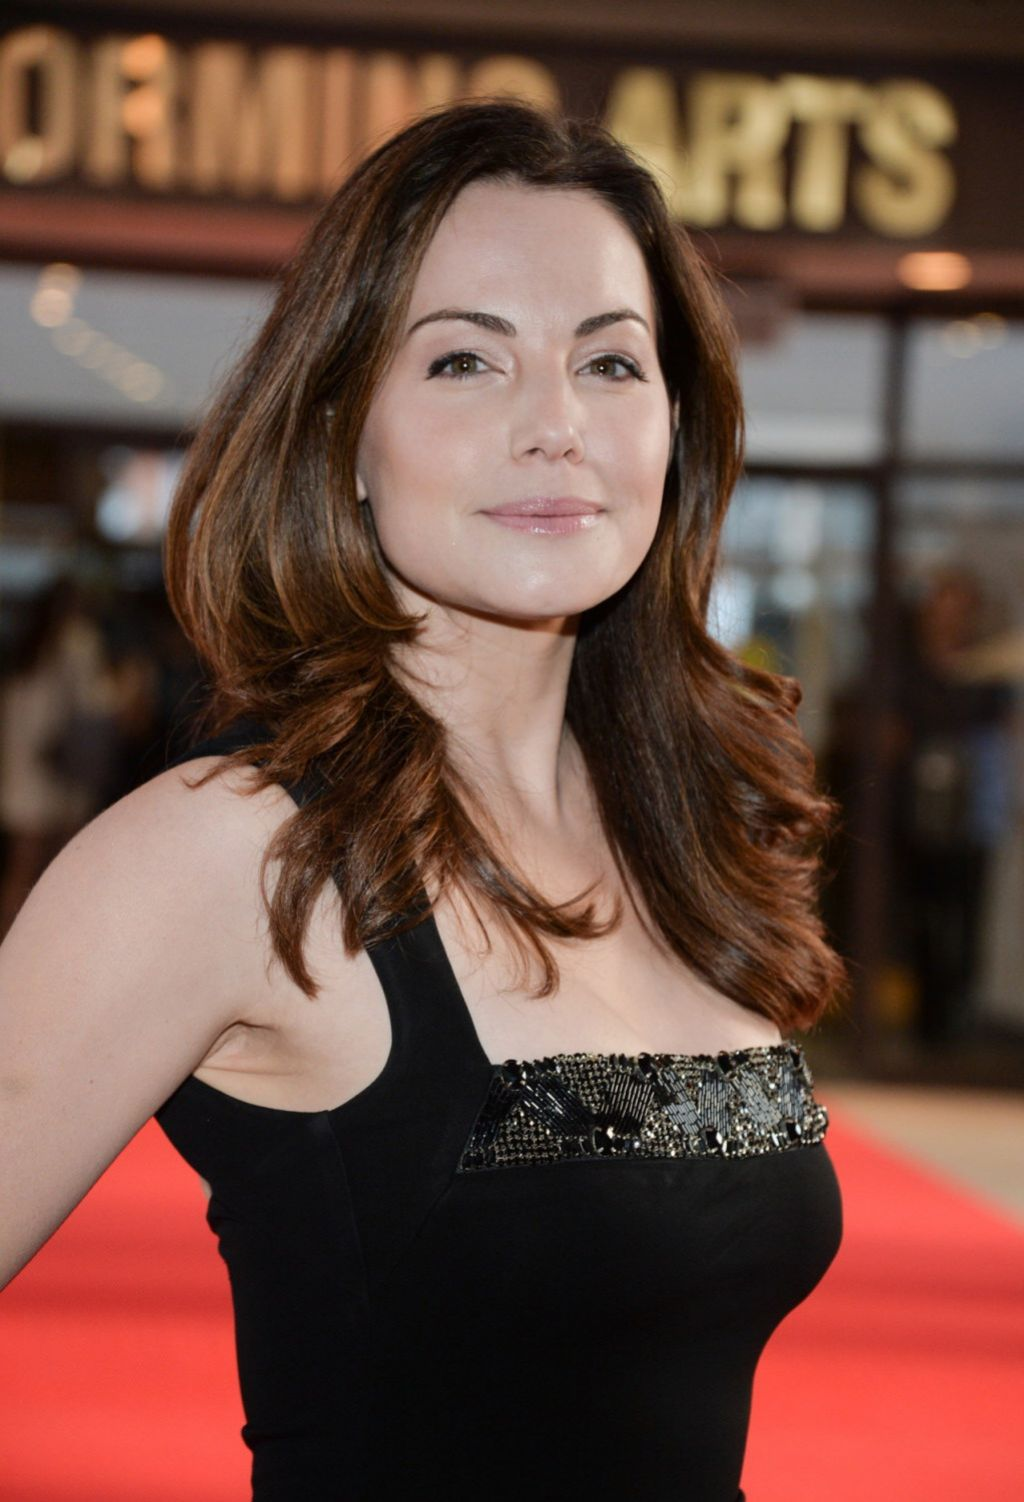 Erica Durance 2015 Canada S Walk Of Fame Awards In Toronto